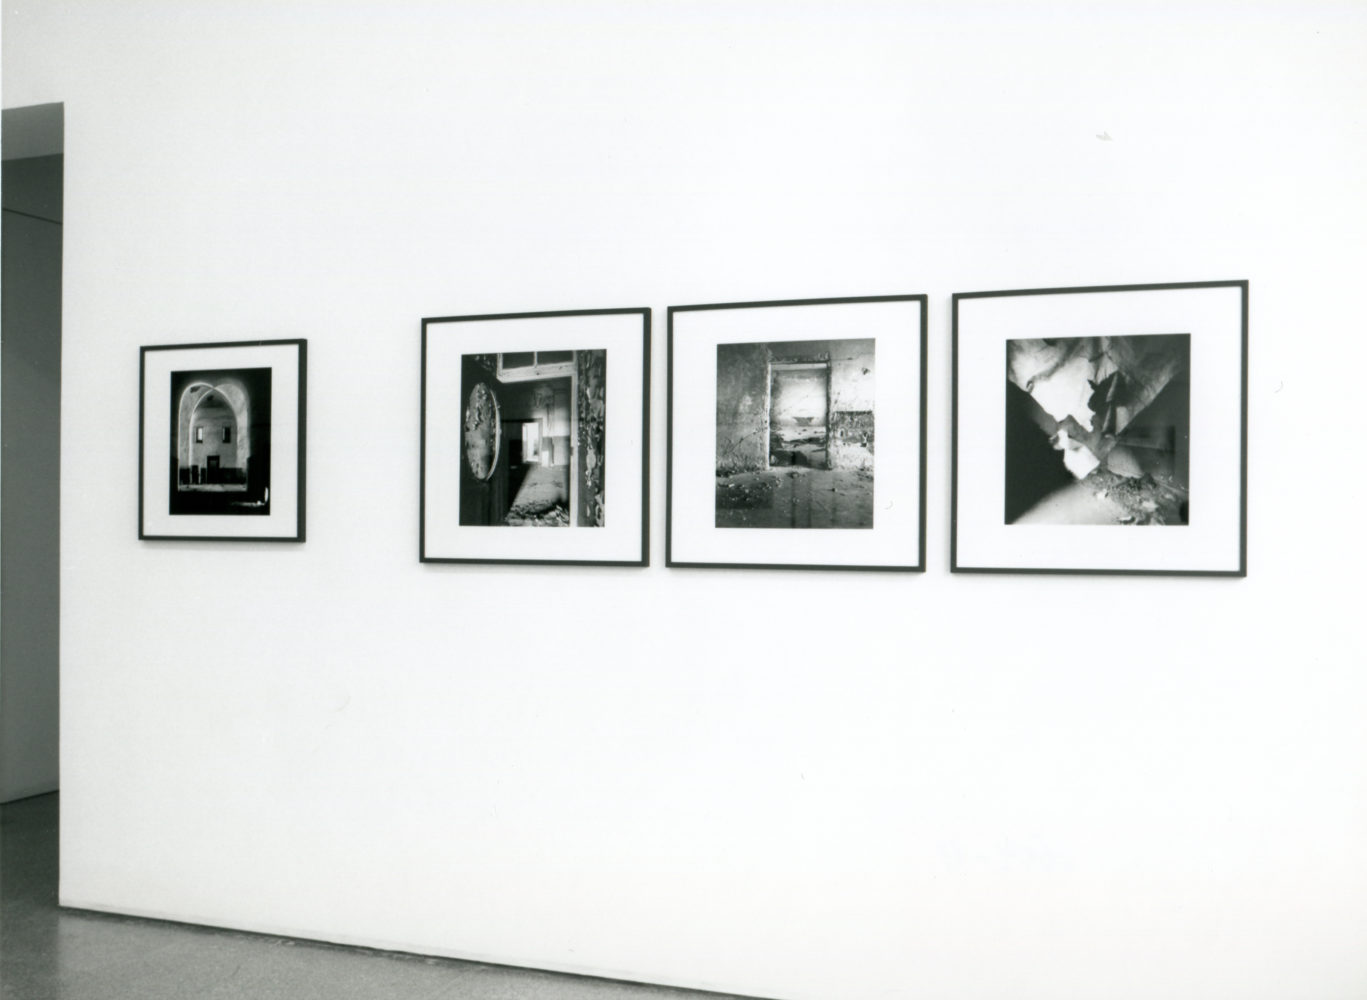 Exhibition View